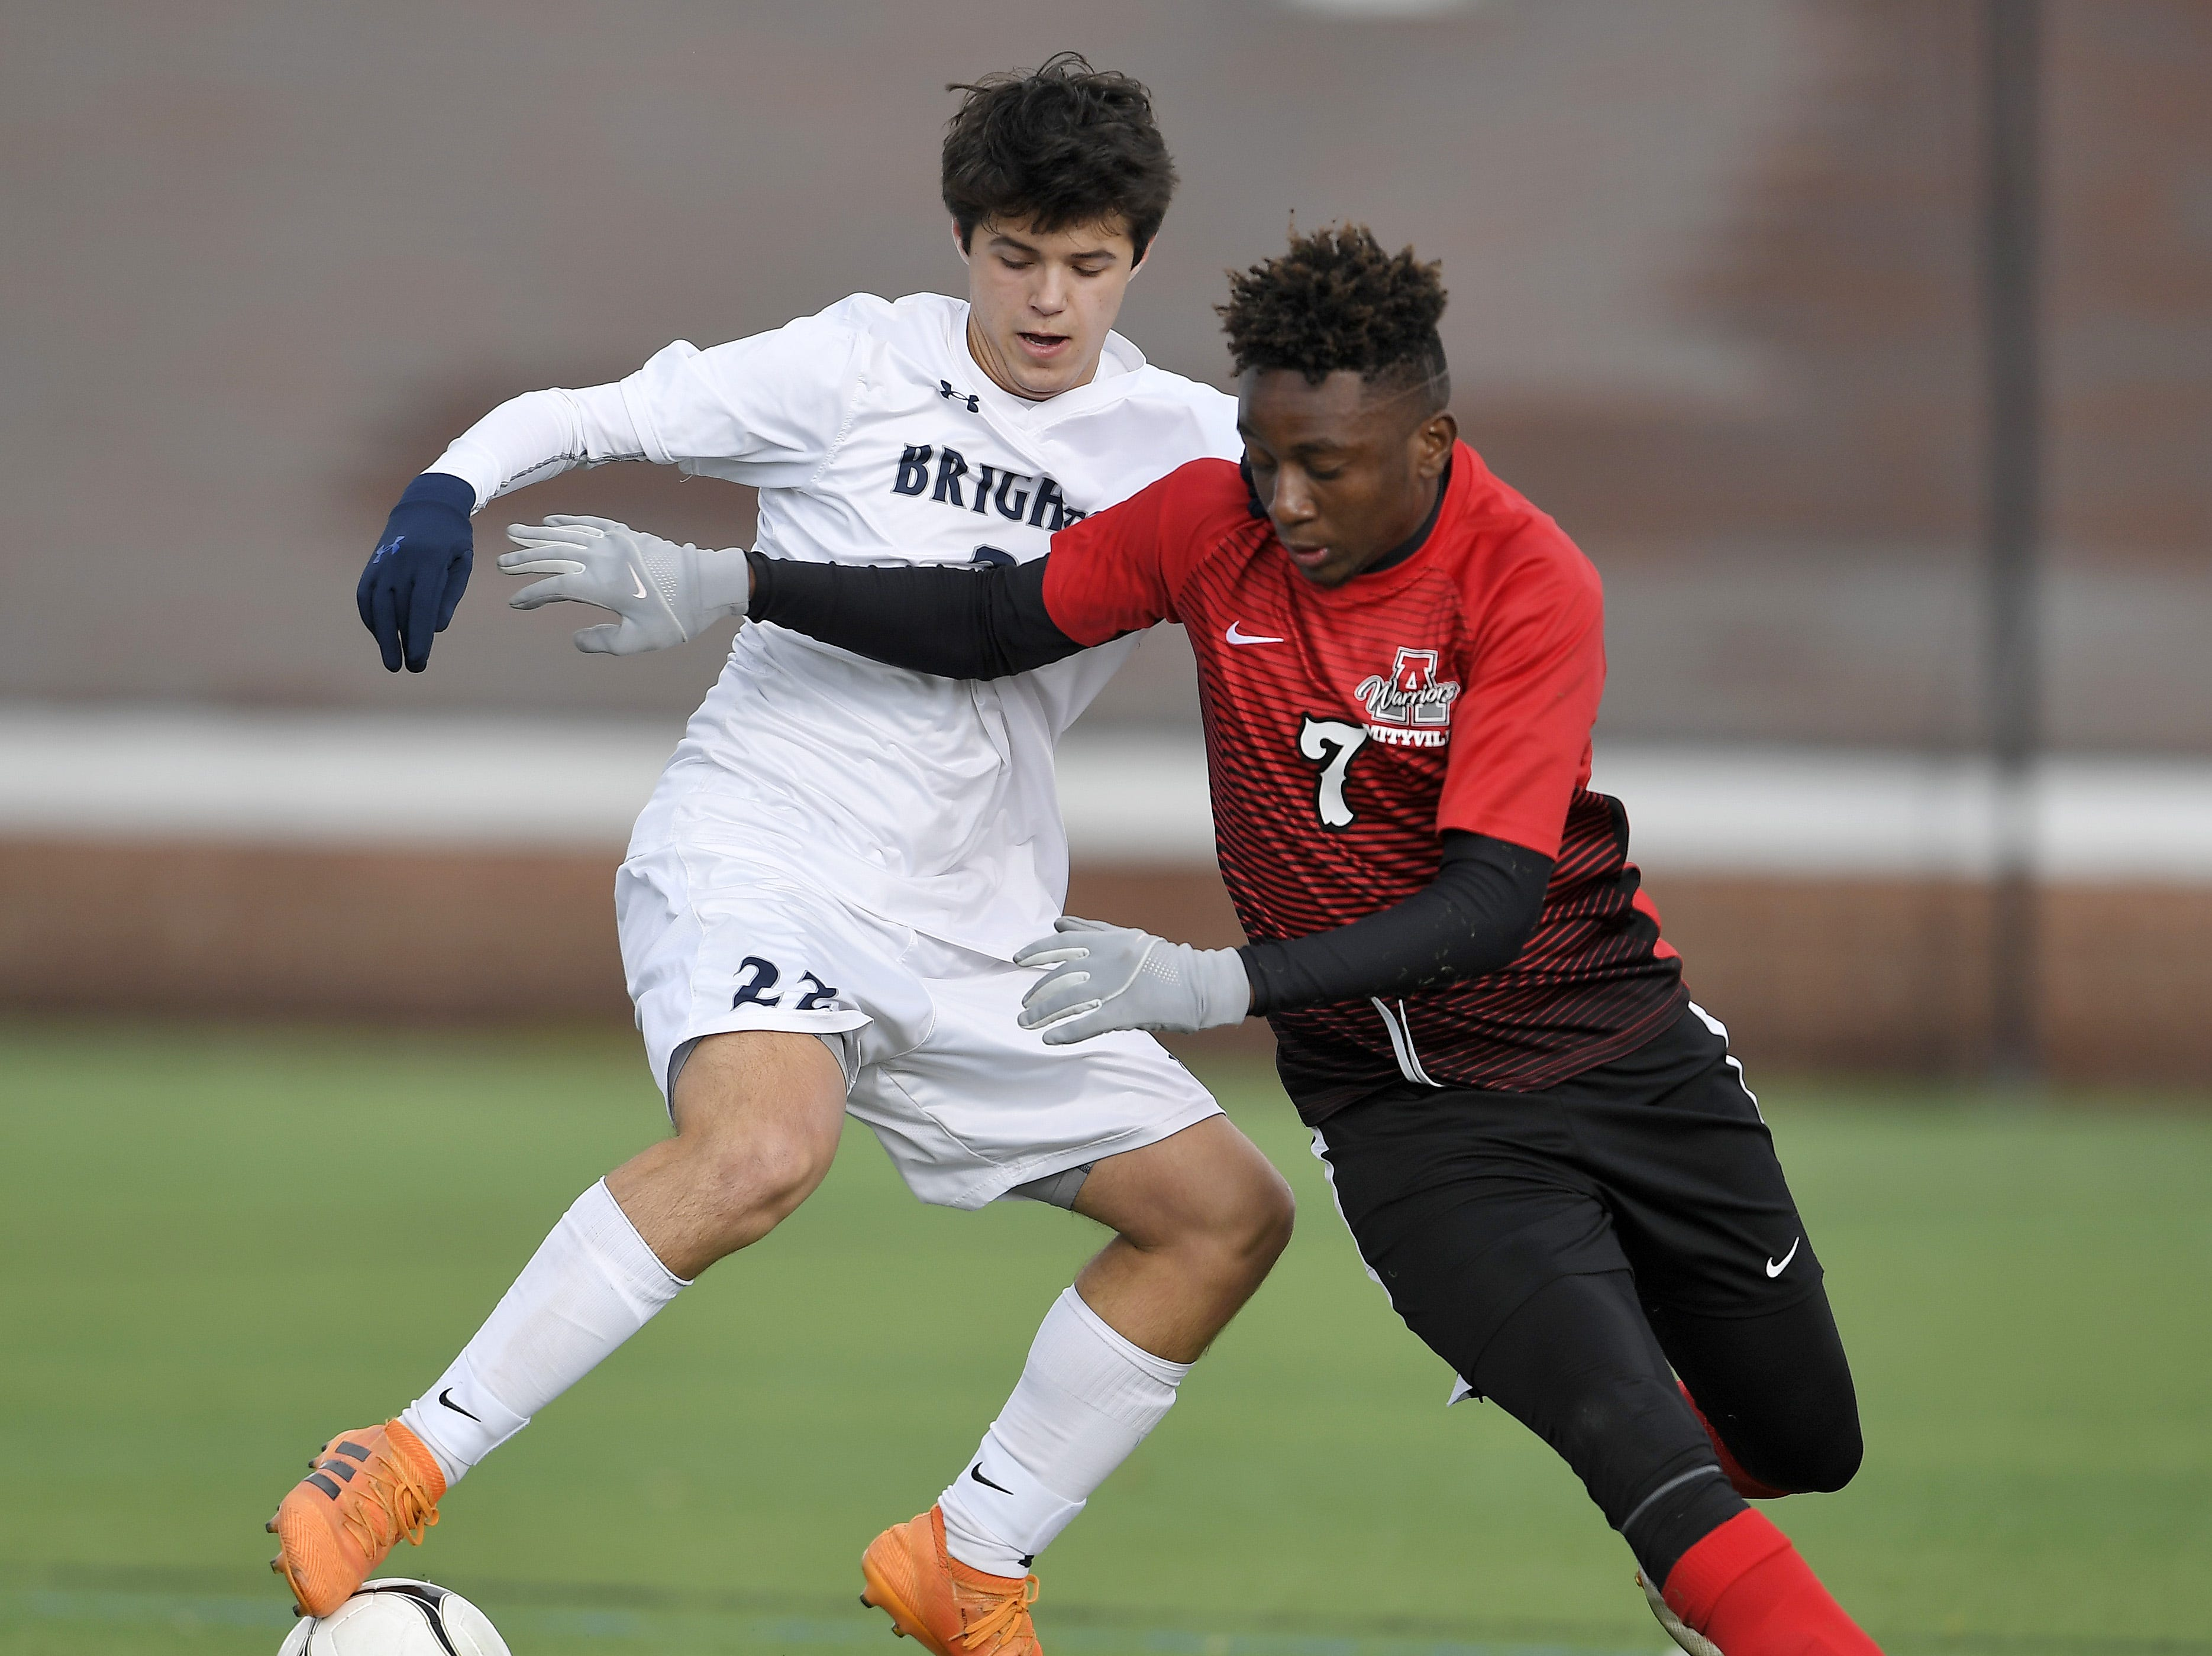 Brighton's Nico Leone, left, is defended by Amityville's Kymani Hines during a Class A semifinal at the NYSPHSAA Boys Soccer Championships in Newburgh, N.Y., Saturday, Nov. 10, 2018.